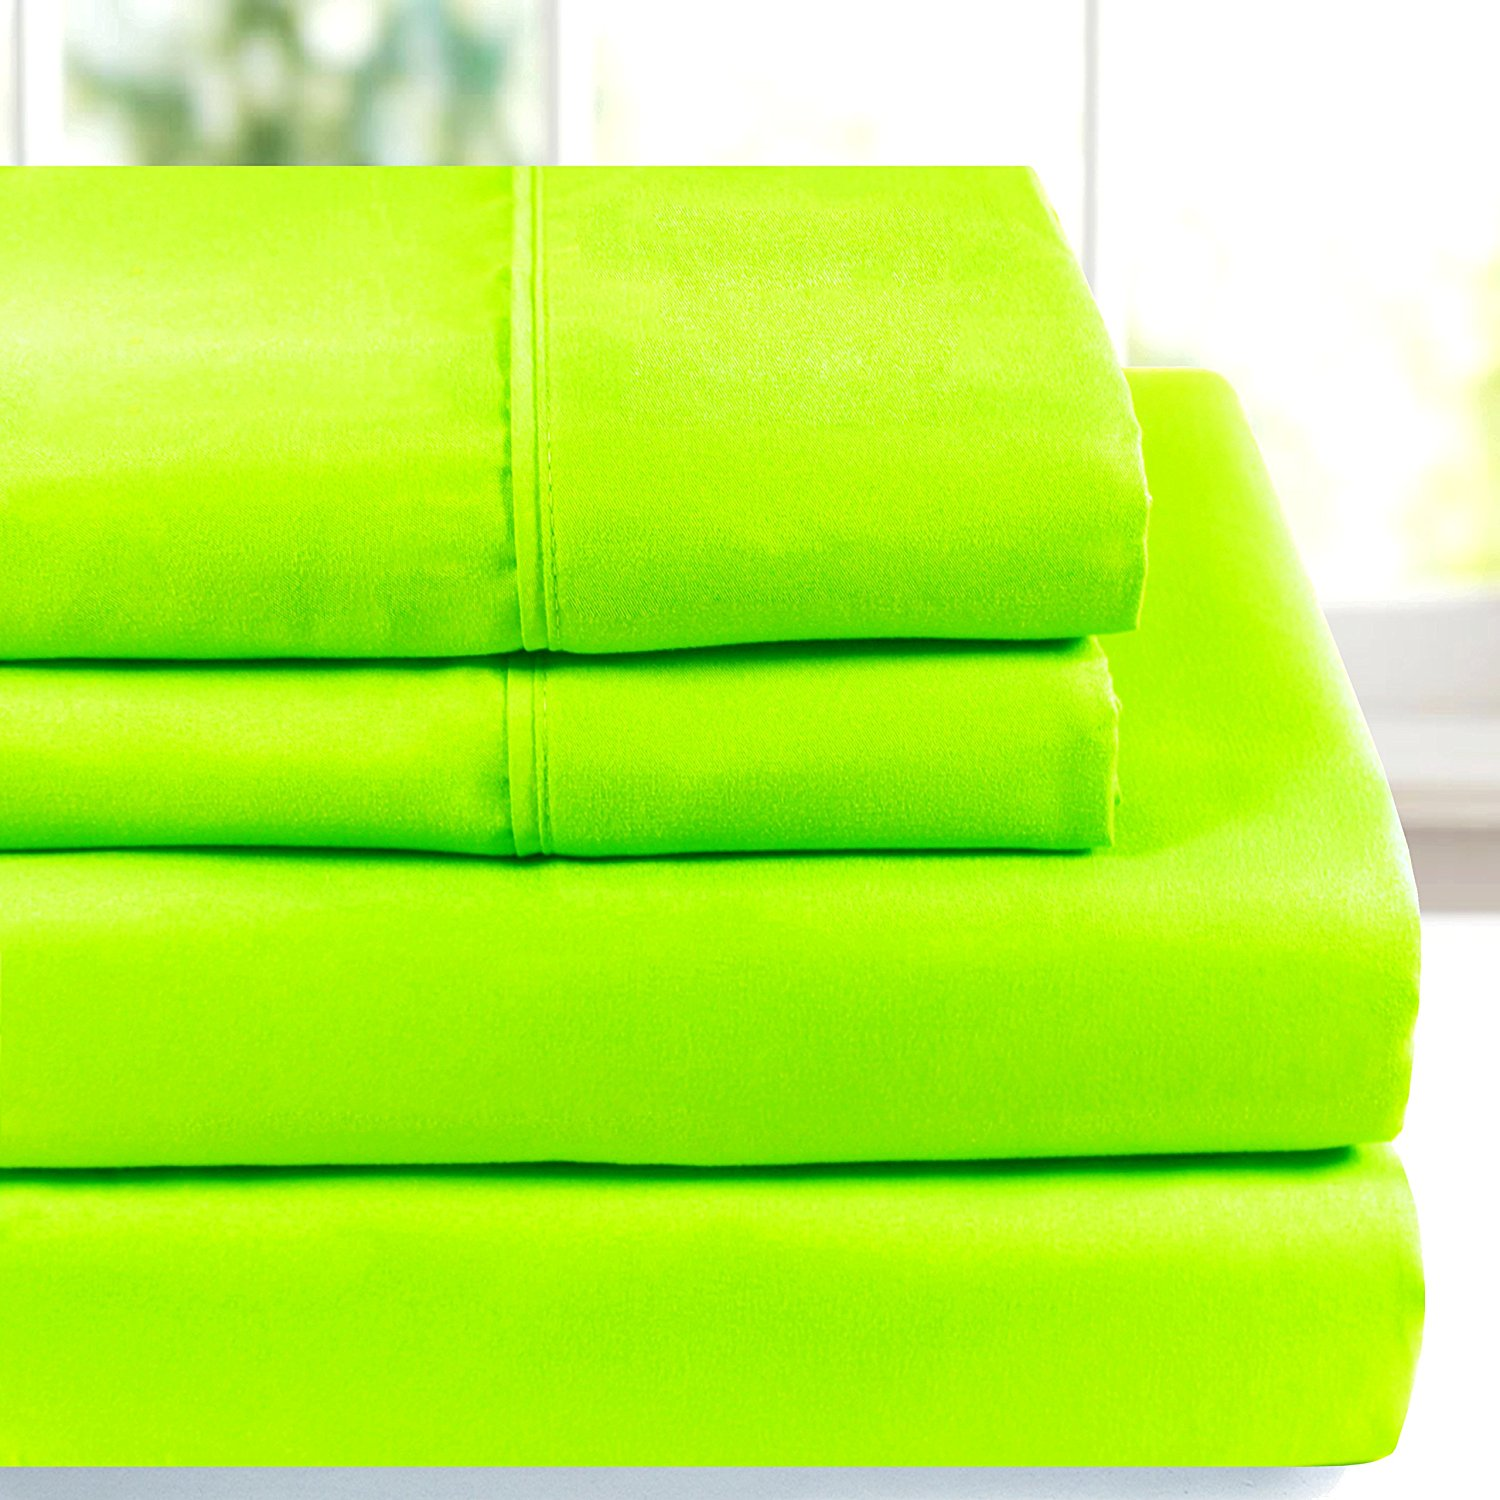 American Home Collection Deluxe 4 Piece Bed Sheet Sets Highest Quality of Brushed Microfiber Wrinkle Resistant Silky Soft Touch (Queen, Lime Green)